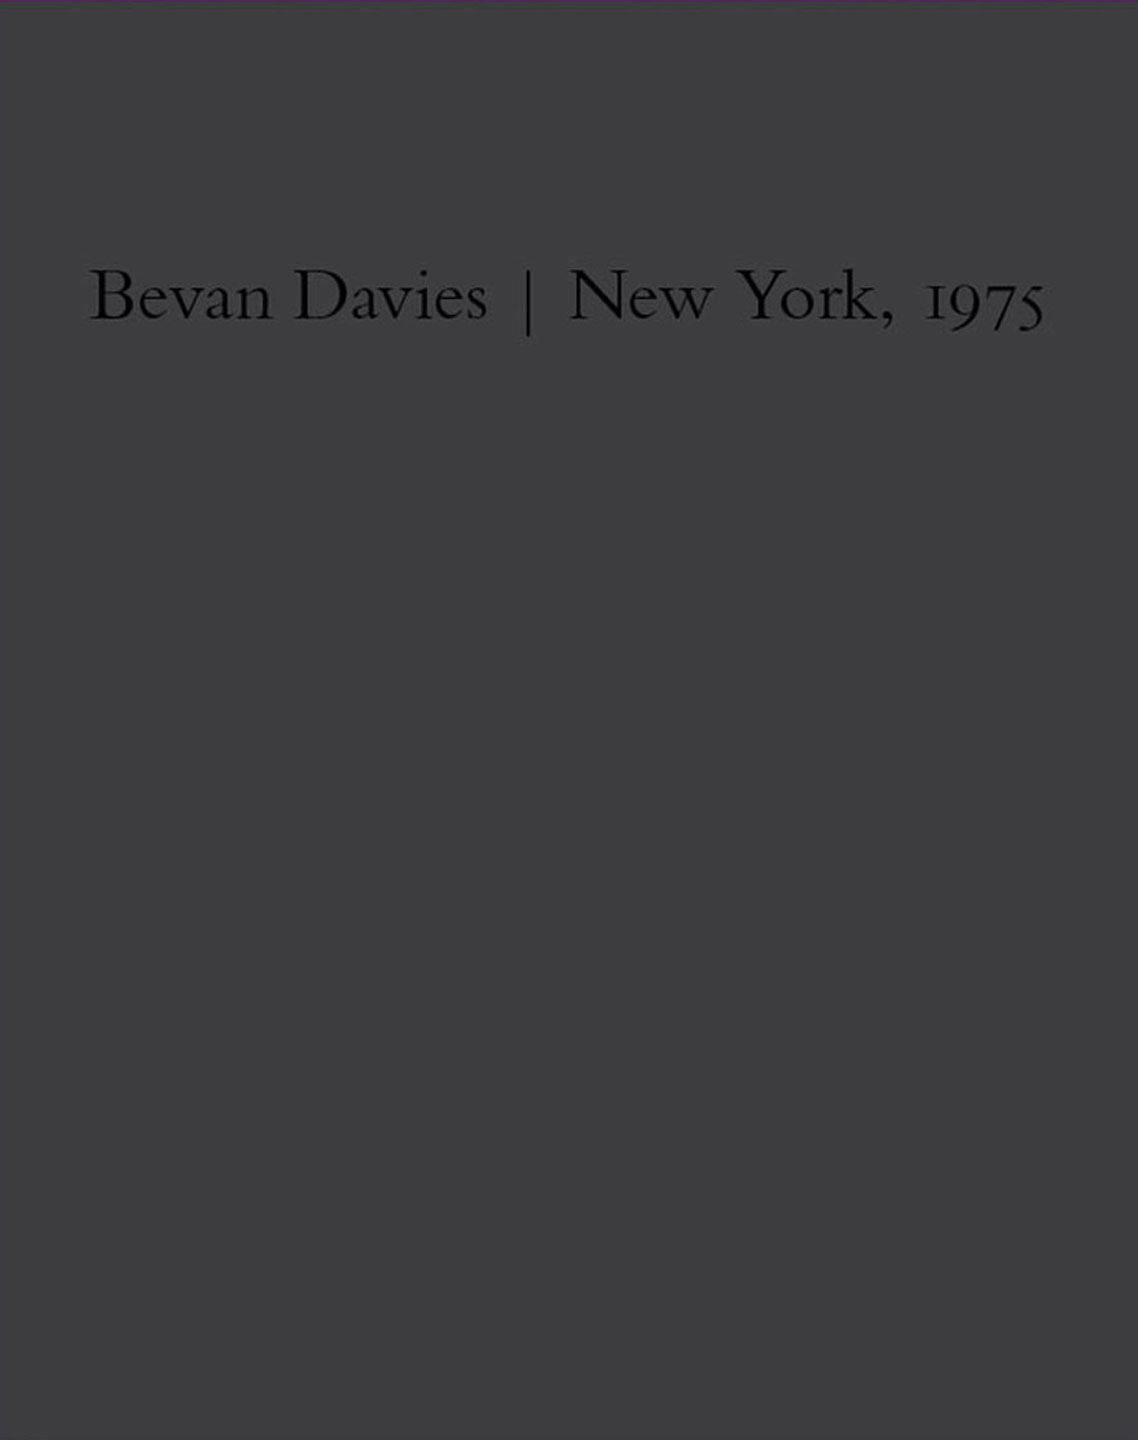 NZ Library #3: Bevan Davies: New York, 1975, Limited Edition (NZ Library - Set Three) [SIGNED]